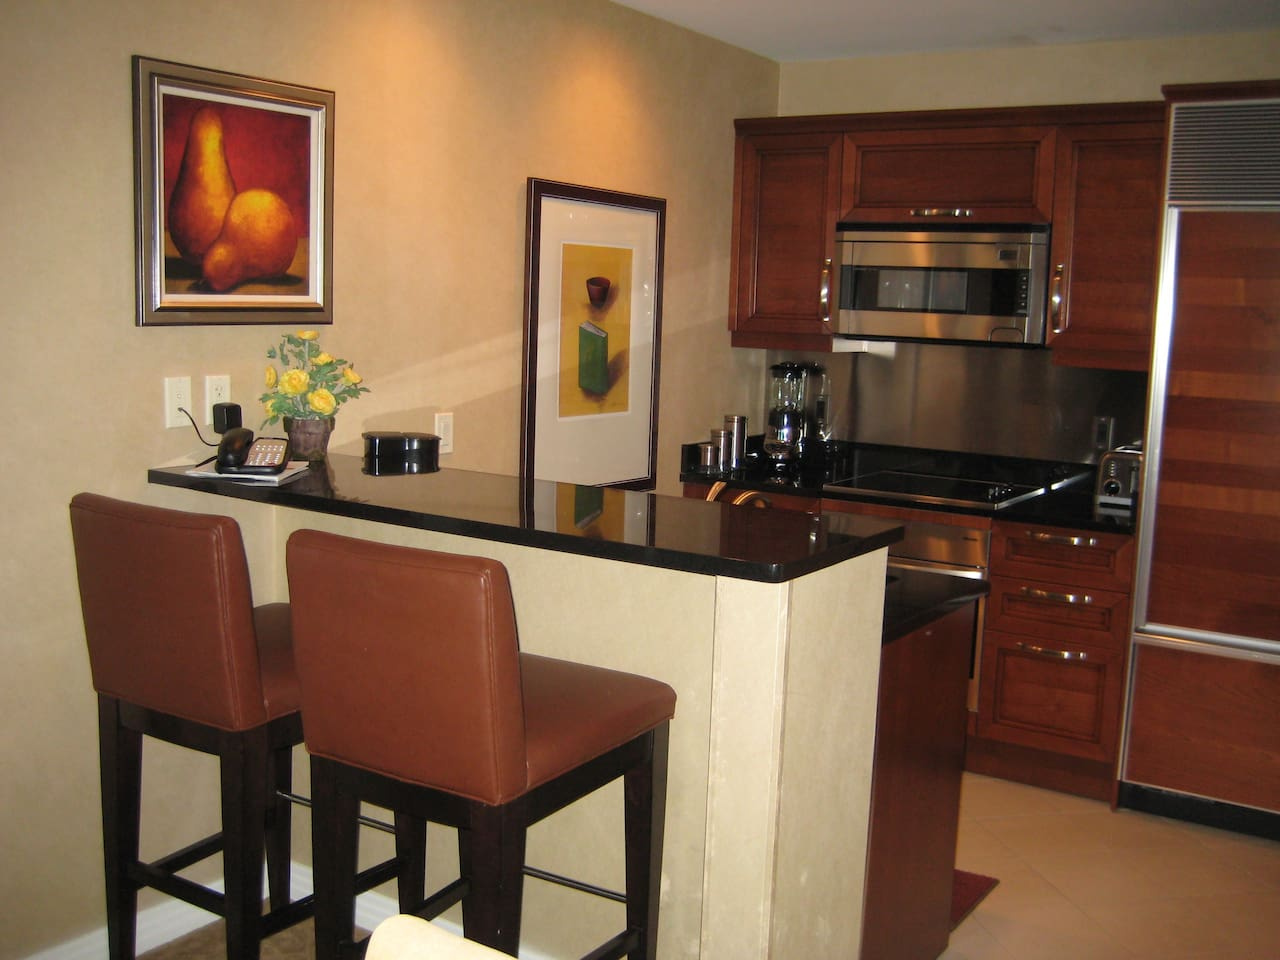 Mgm Grand Tower One Bedroom Suite Signature Penthouse 2bd 3bath 31st Floor Tower 1 Condominiums